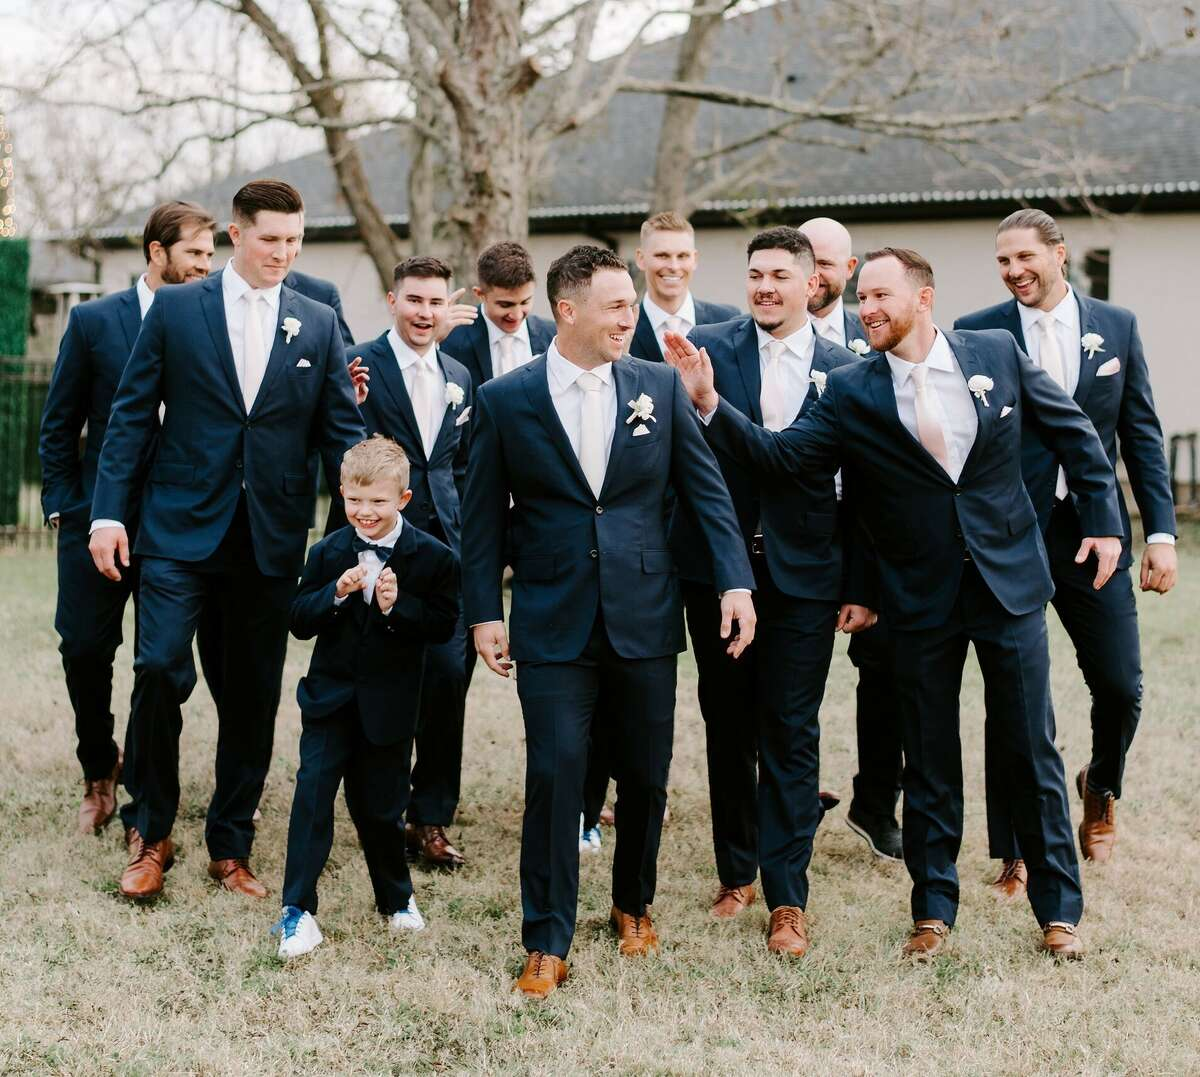 Alex Bregman with his groomsmen before his wedding with Reagan on Dec. 5, 2020.